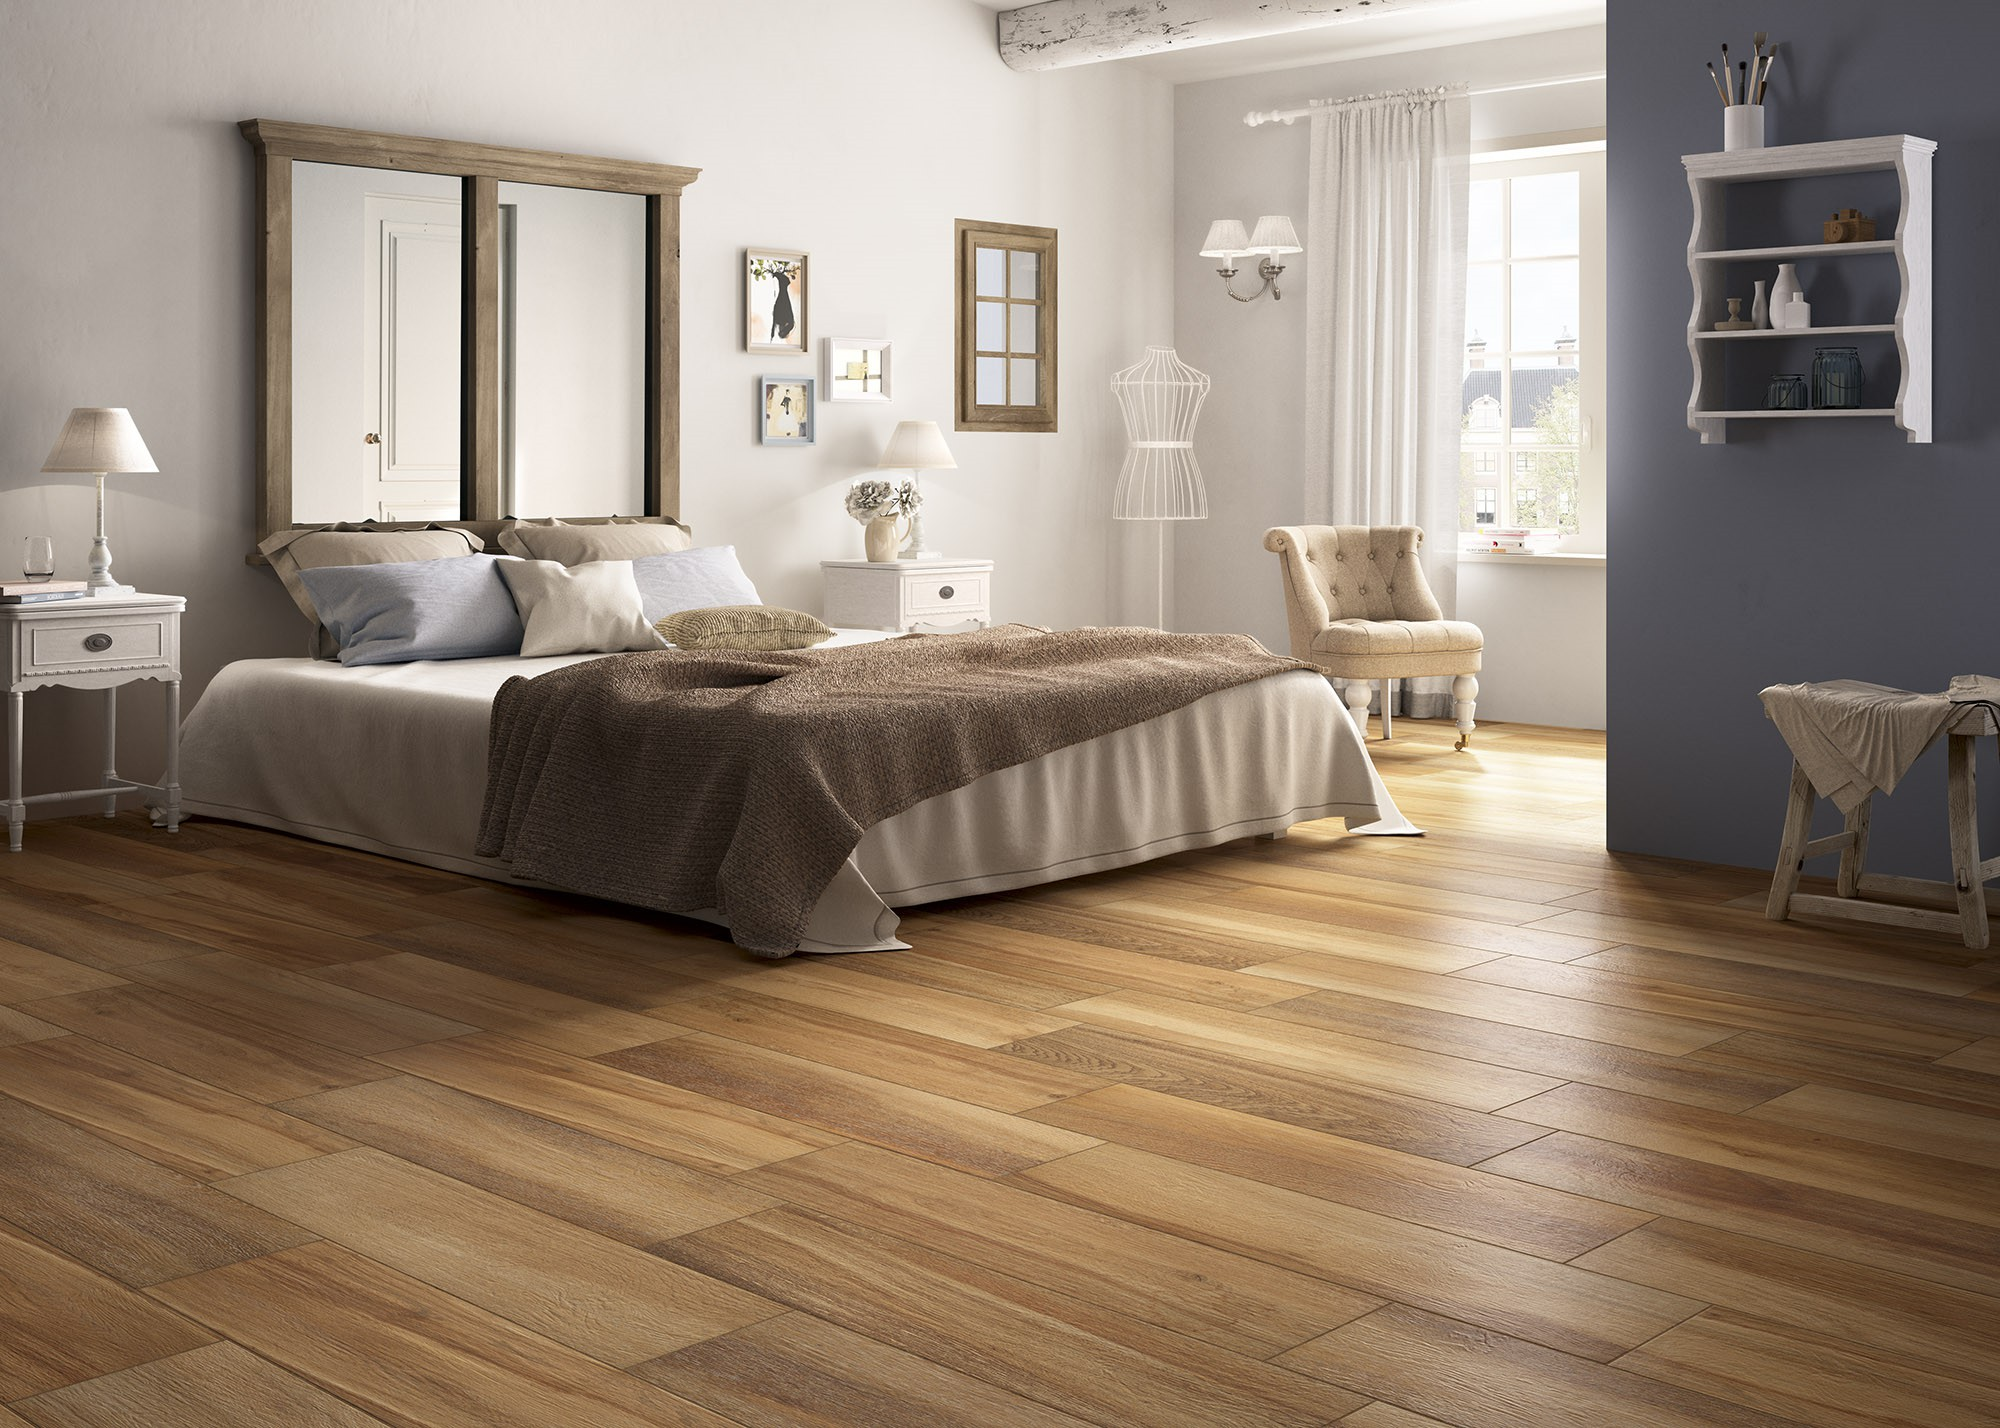 carrelage chambre imitation parquet. great salon carrelage ... - Carrelage Chambre Imitation Parquet